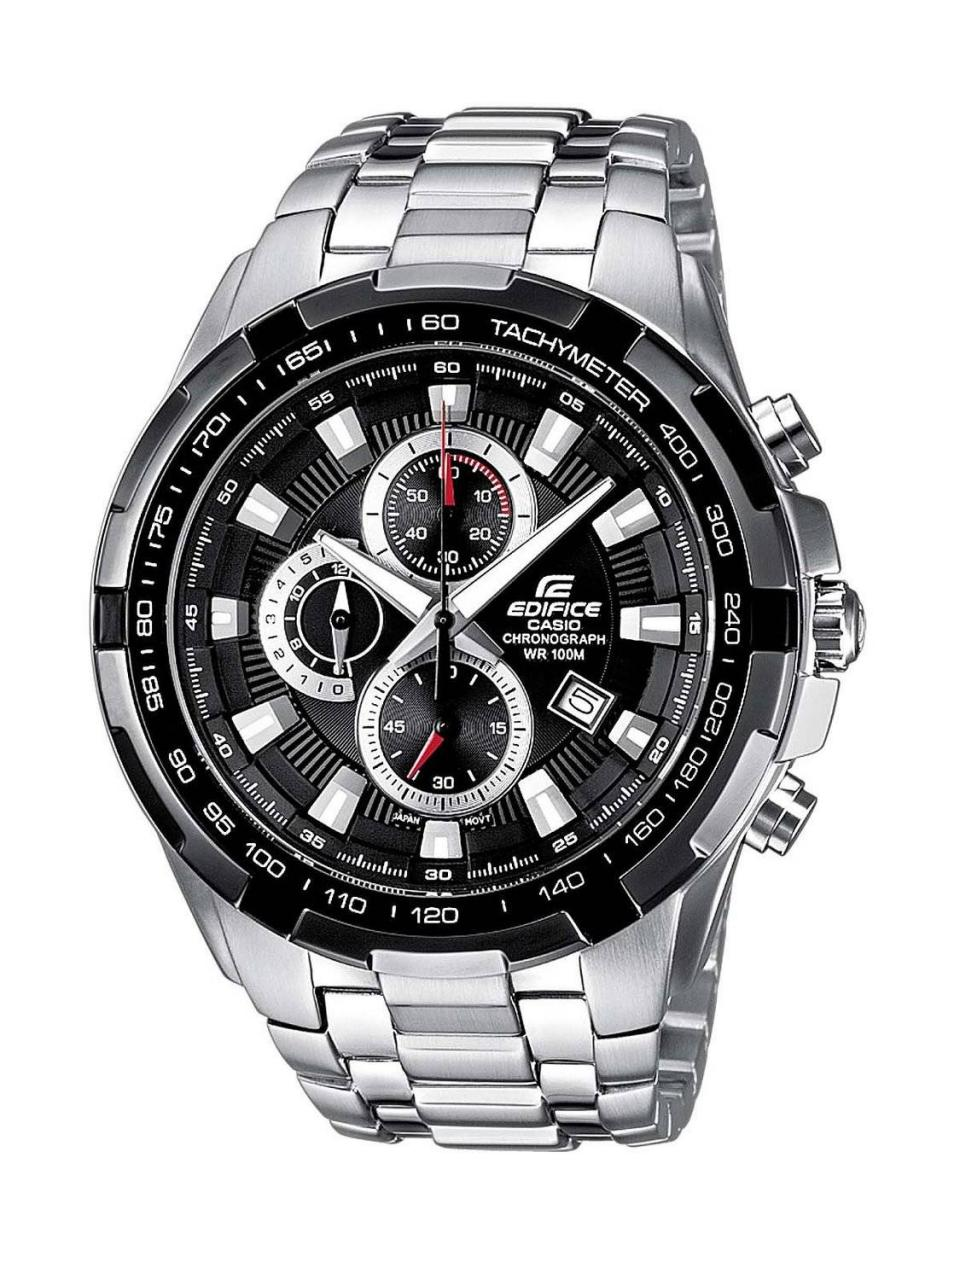 Casio Edifice Men's Watch EF-539D-1AVEF